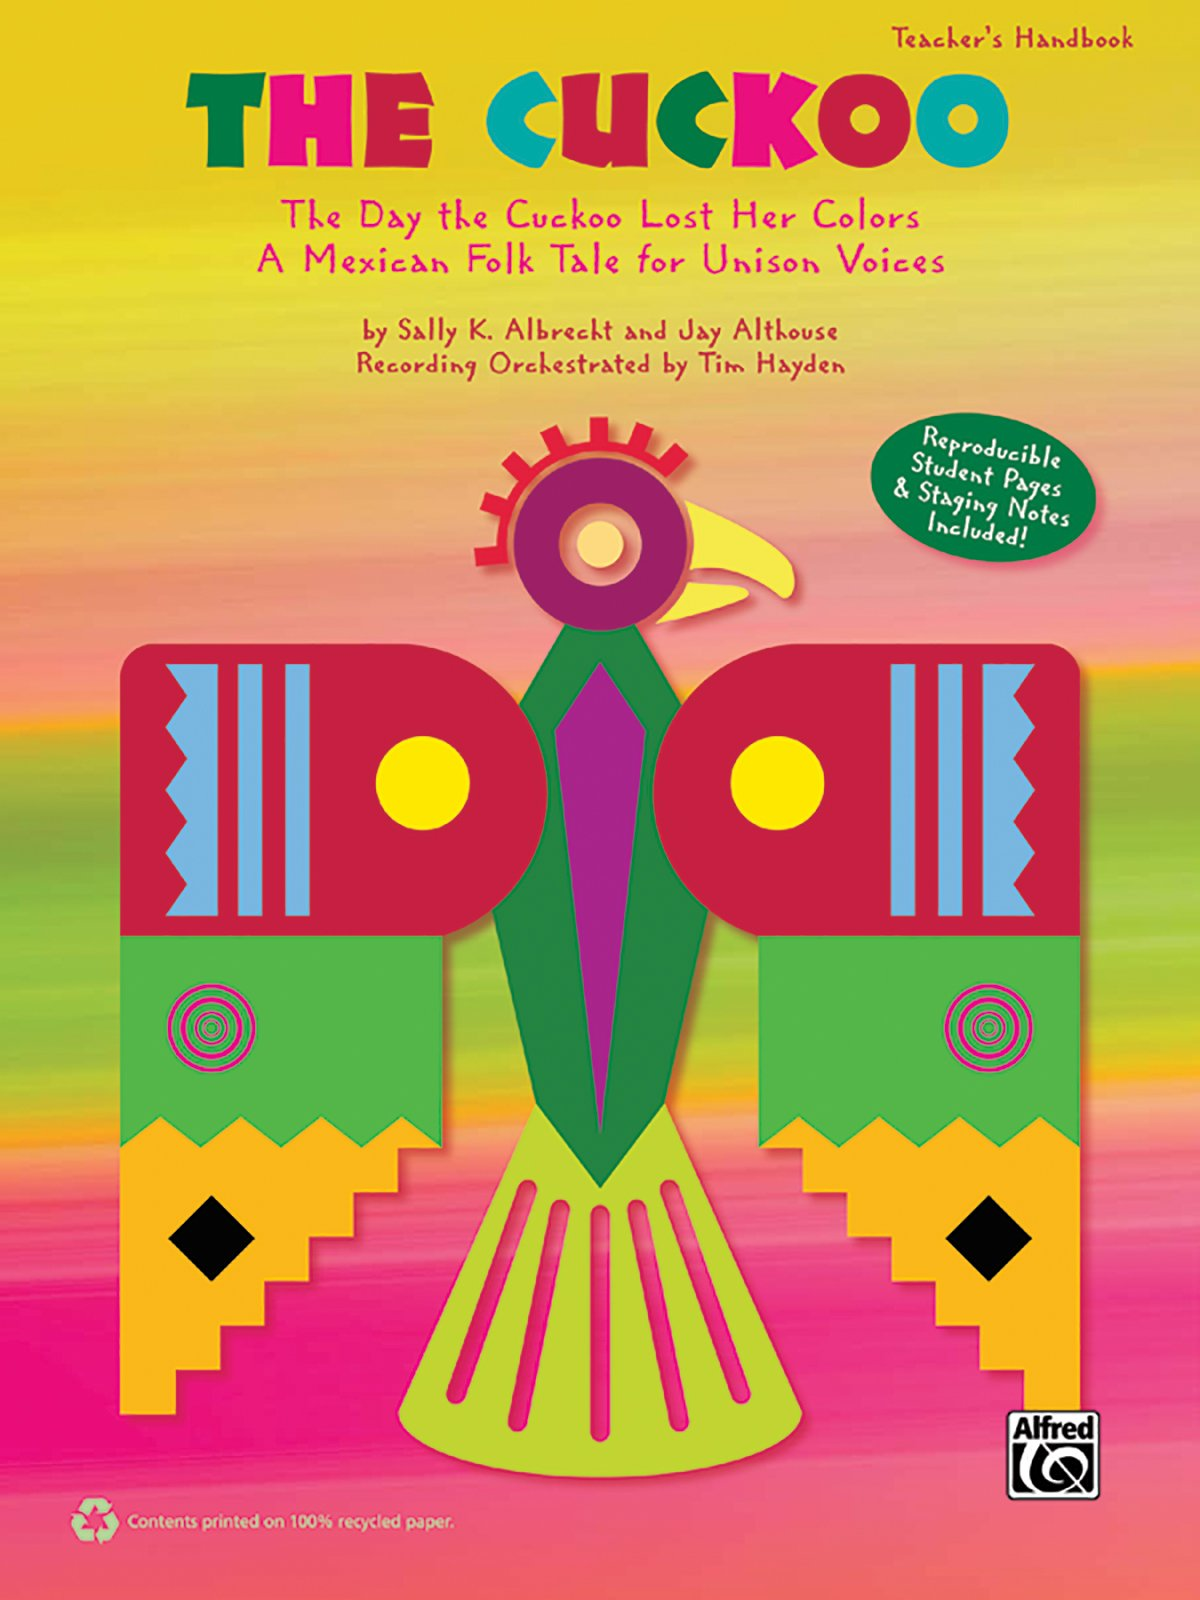 Read Online The Cuckoo: The Day the Cuckoo Lost Her Colors -- A Mexican Folk Tale for Unison Voices (Teacher's Handbook) pdf